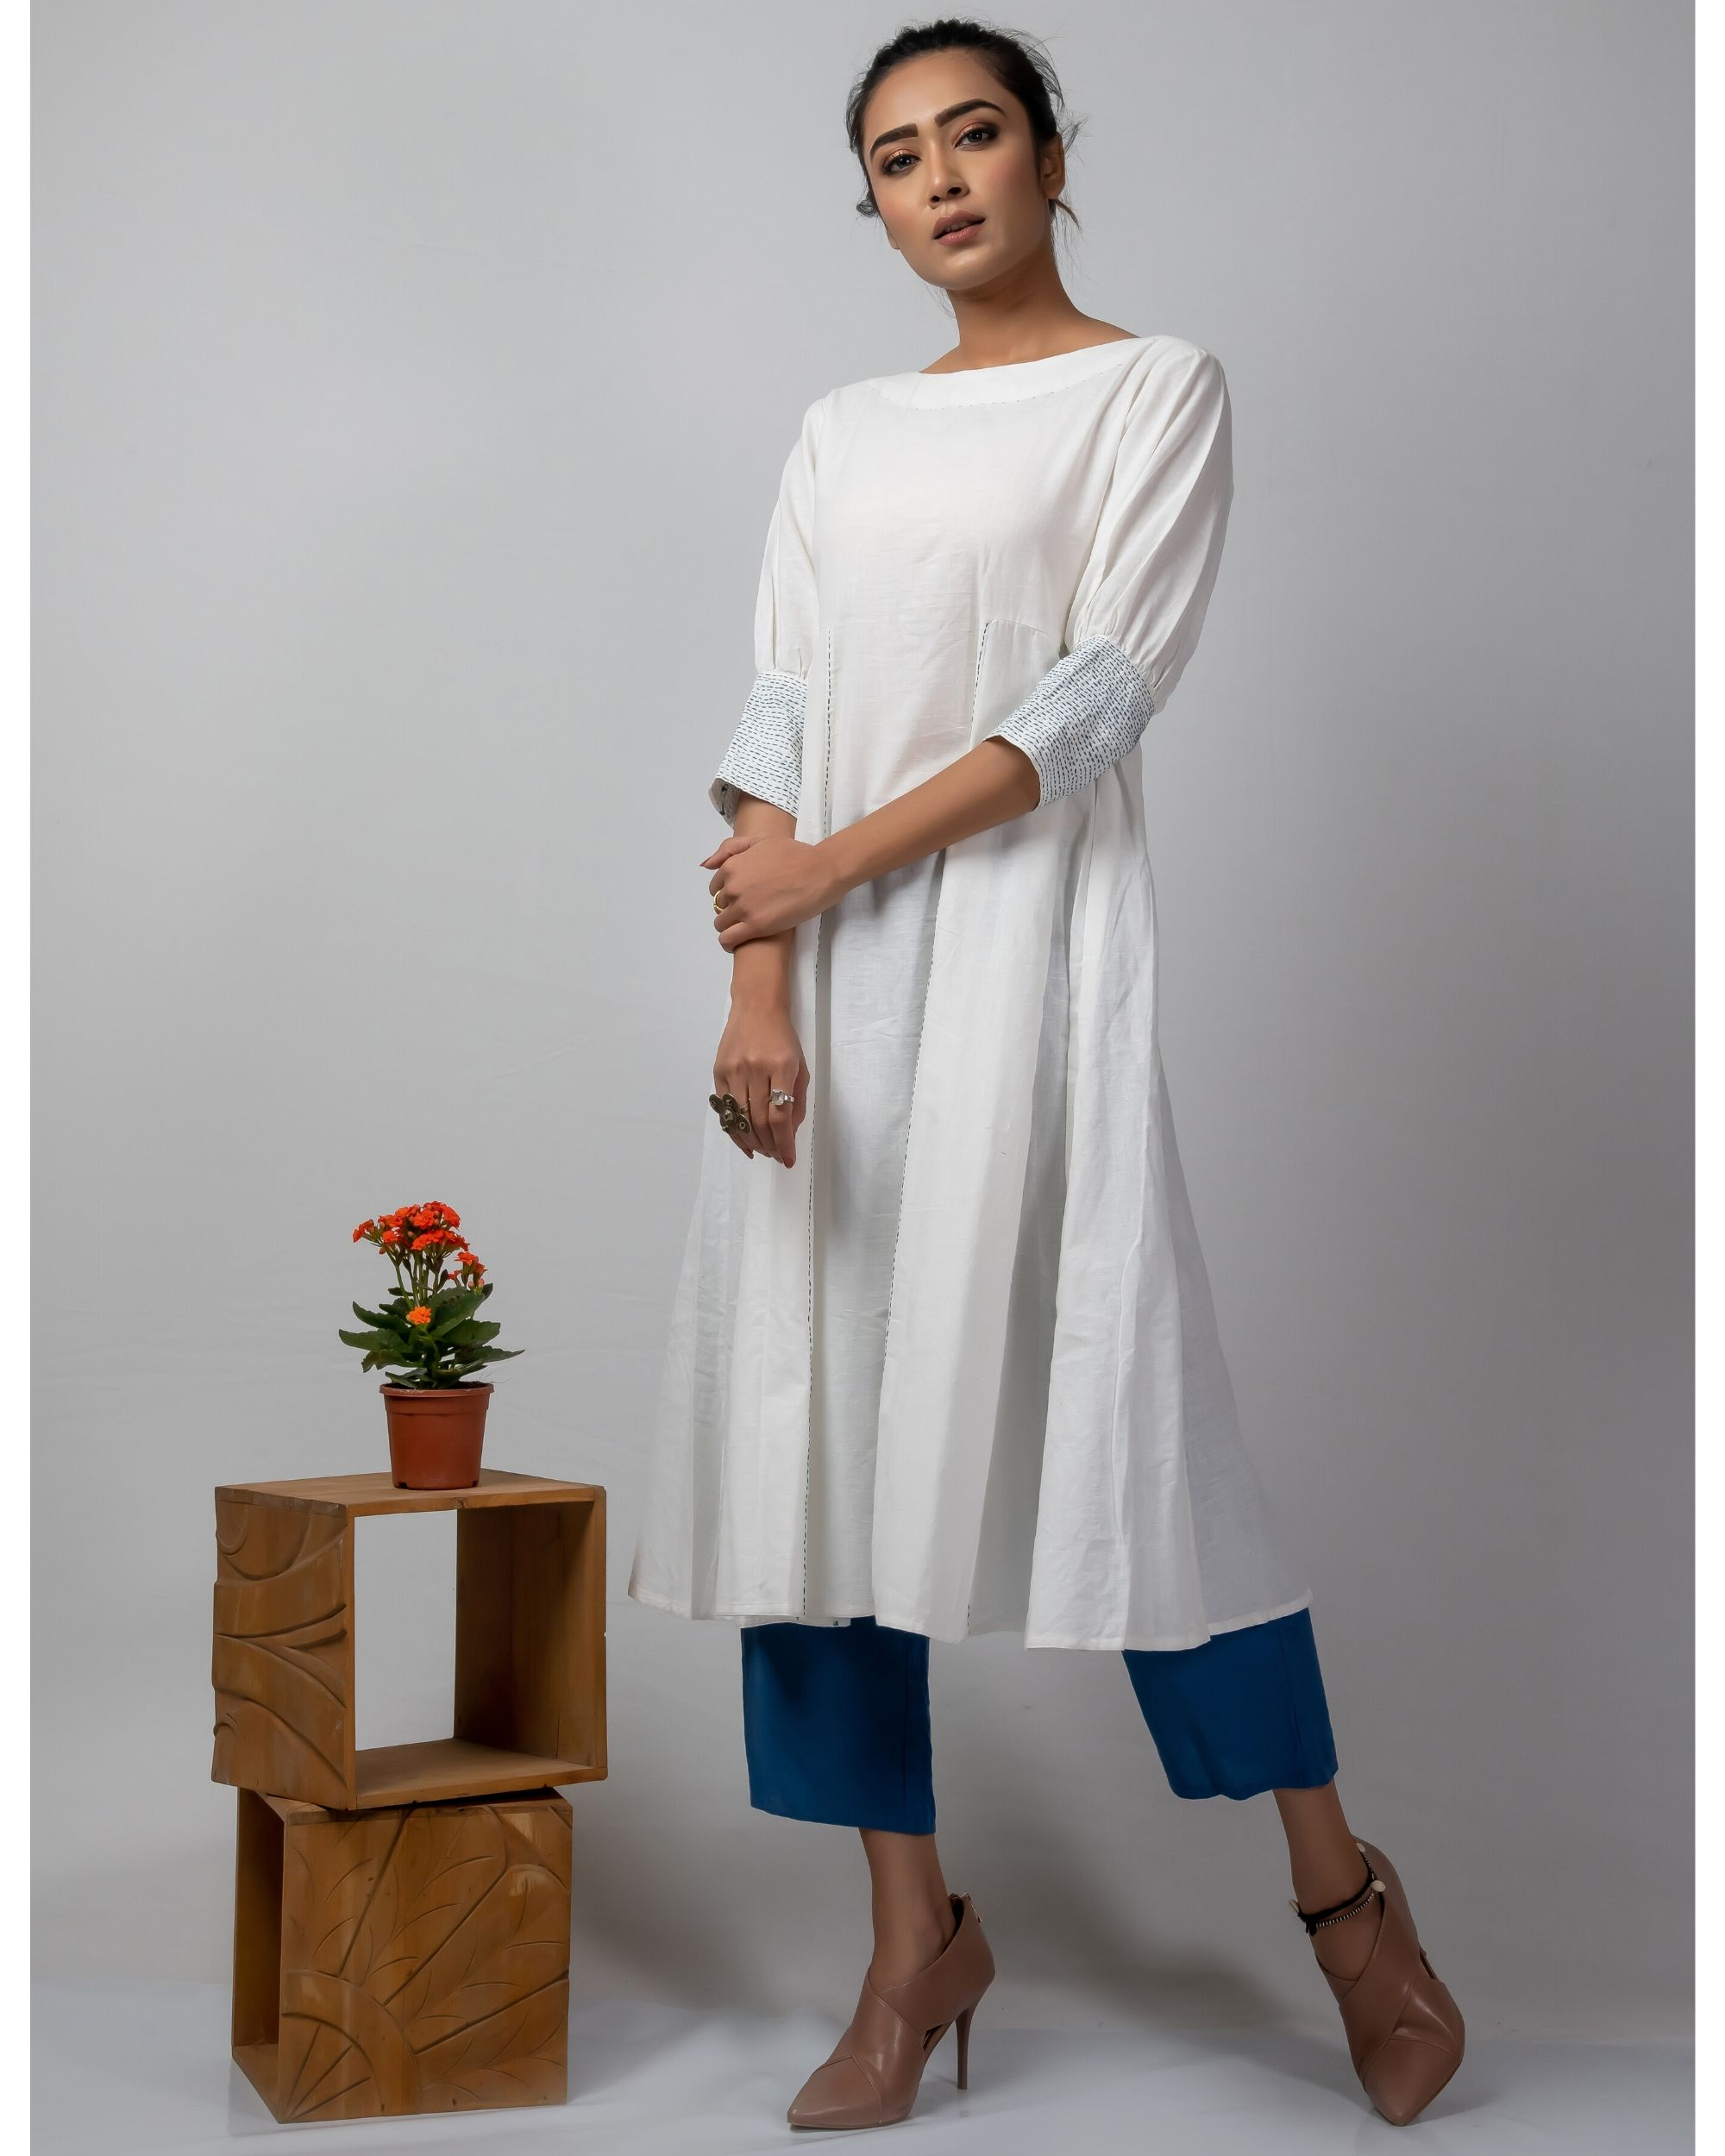 White and blue flared dress with kantha work